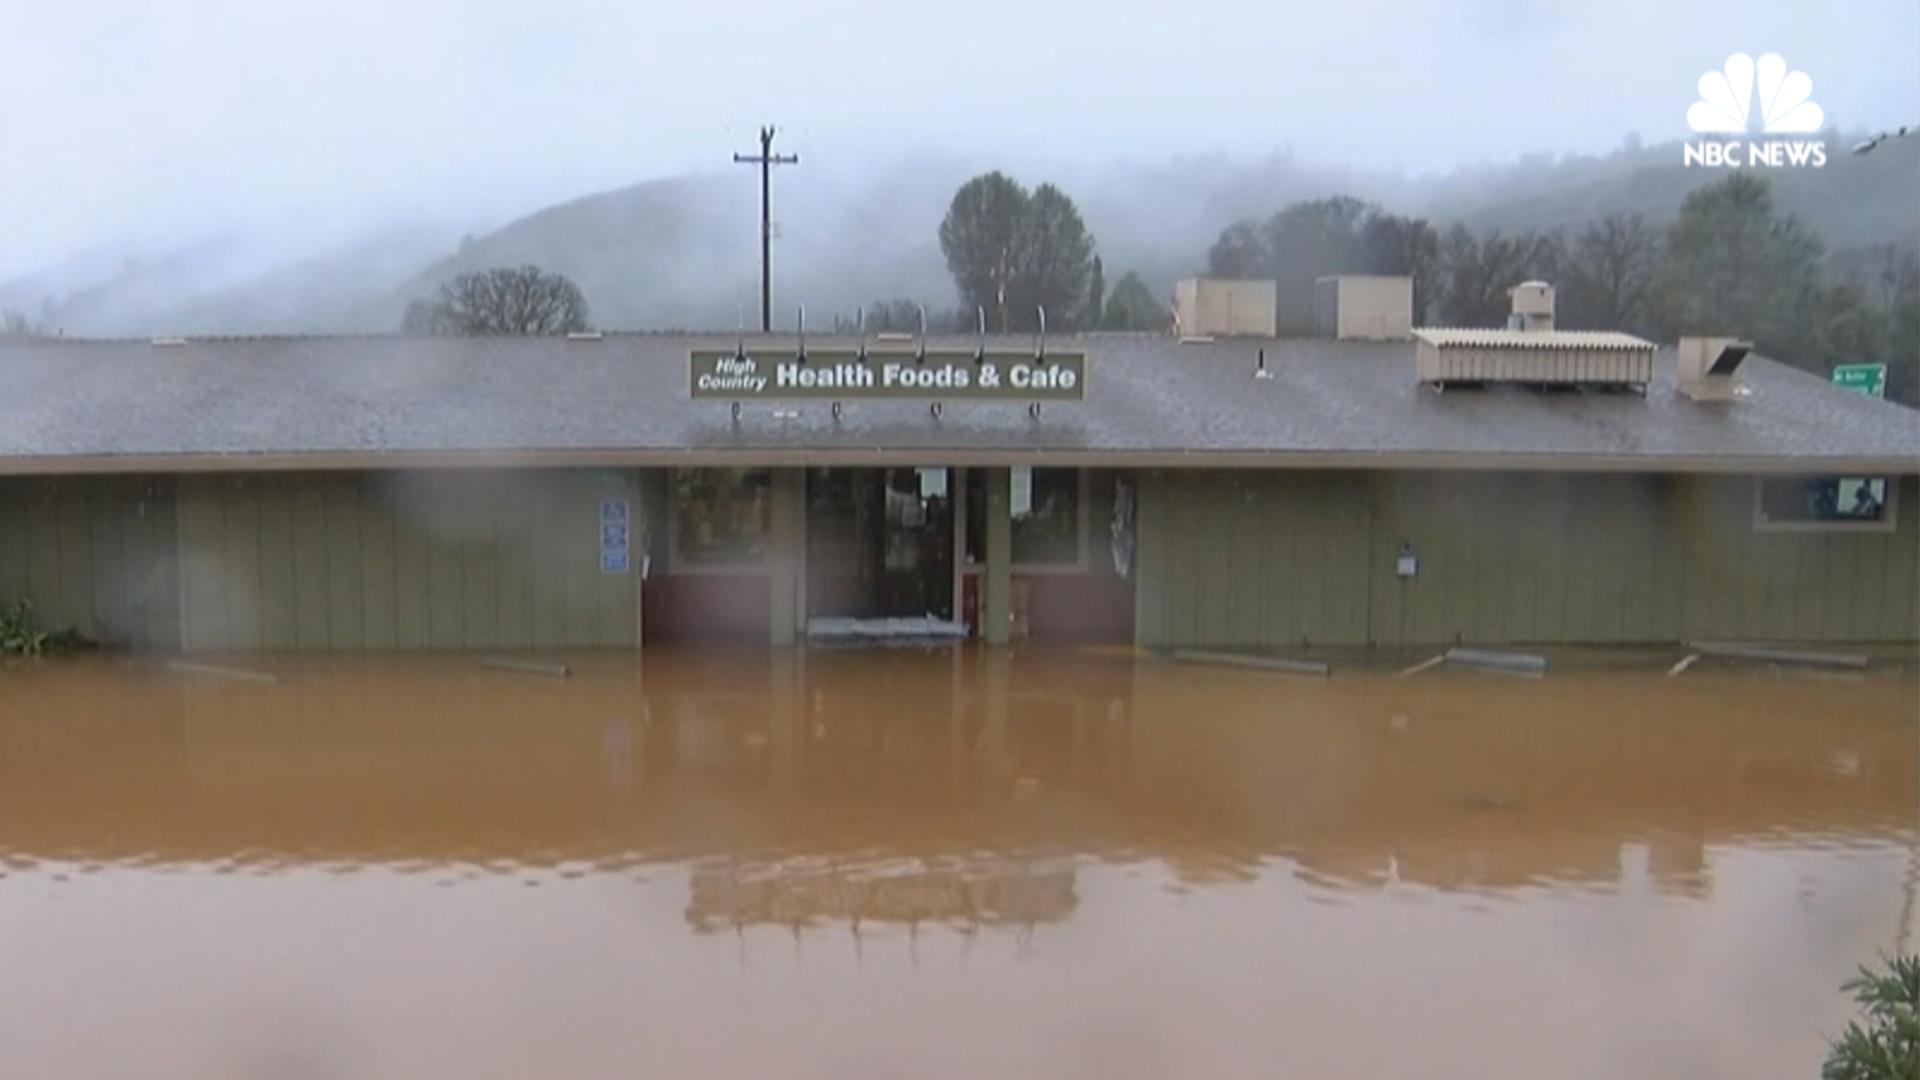 Strong Storms Cause Flooding in Central California - NBC News